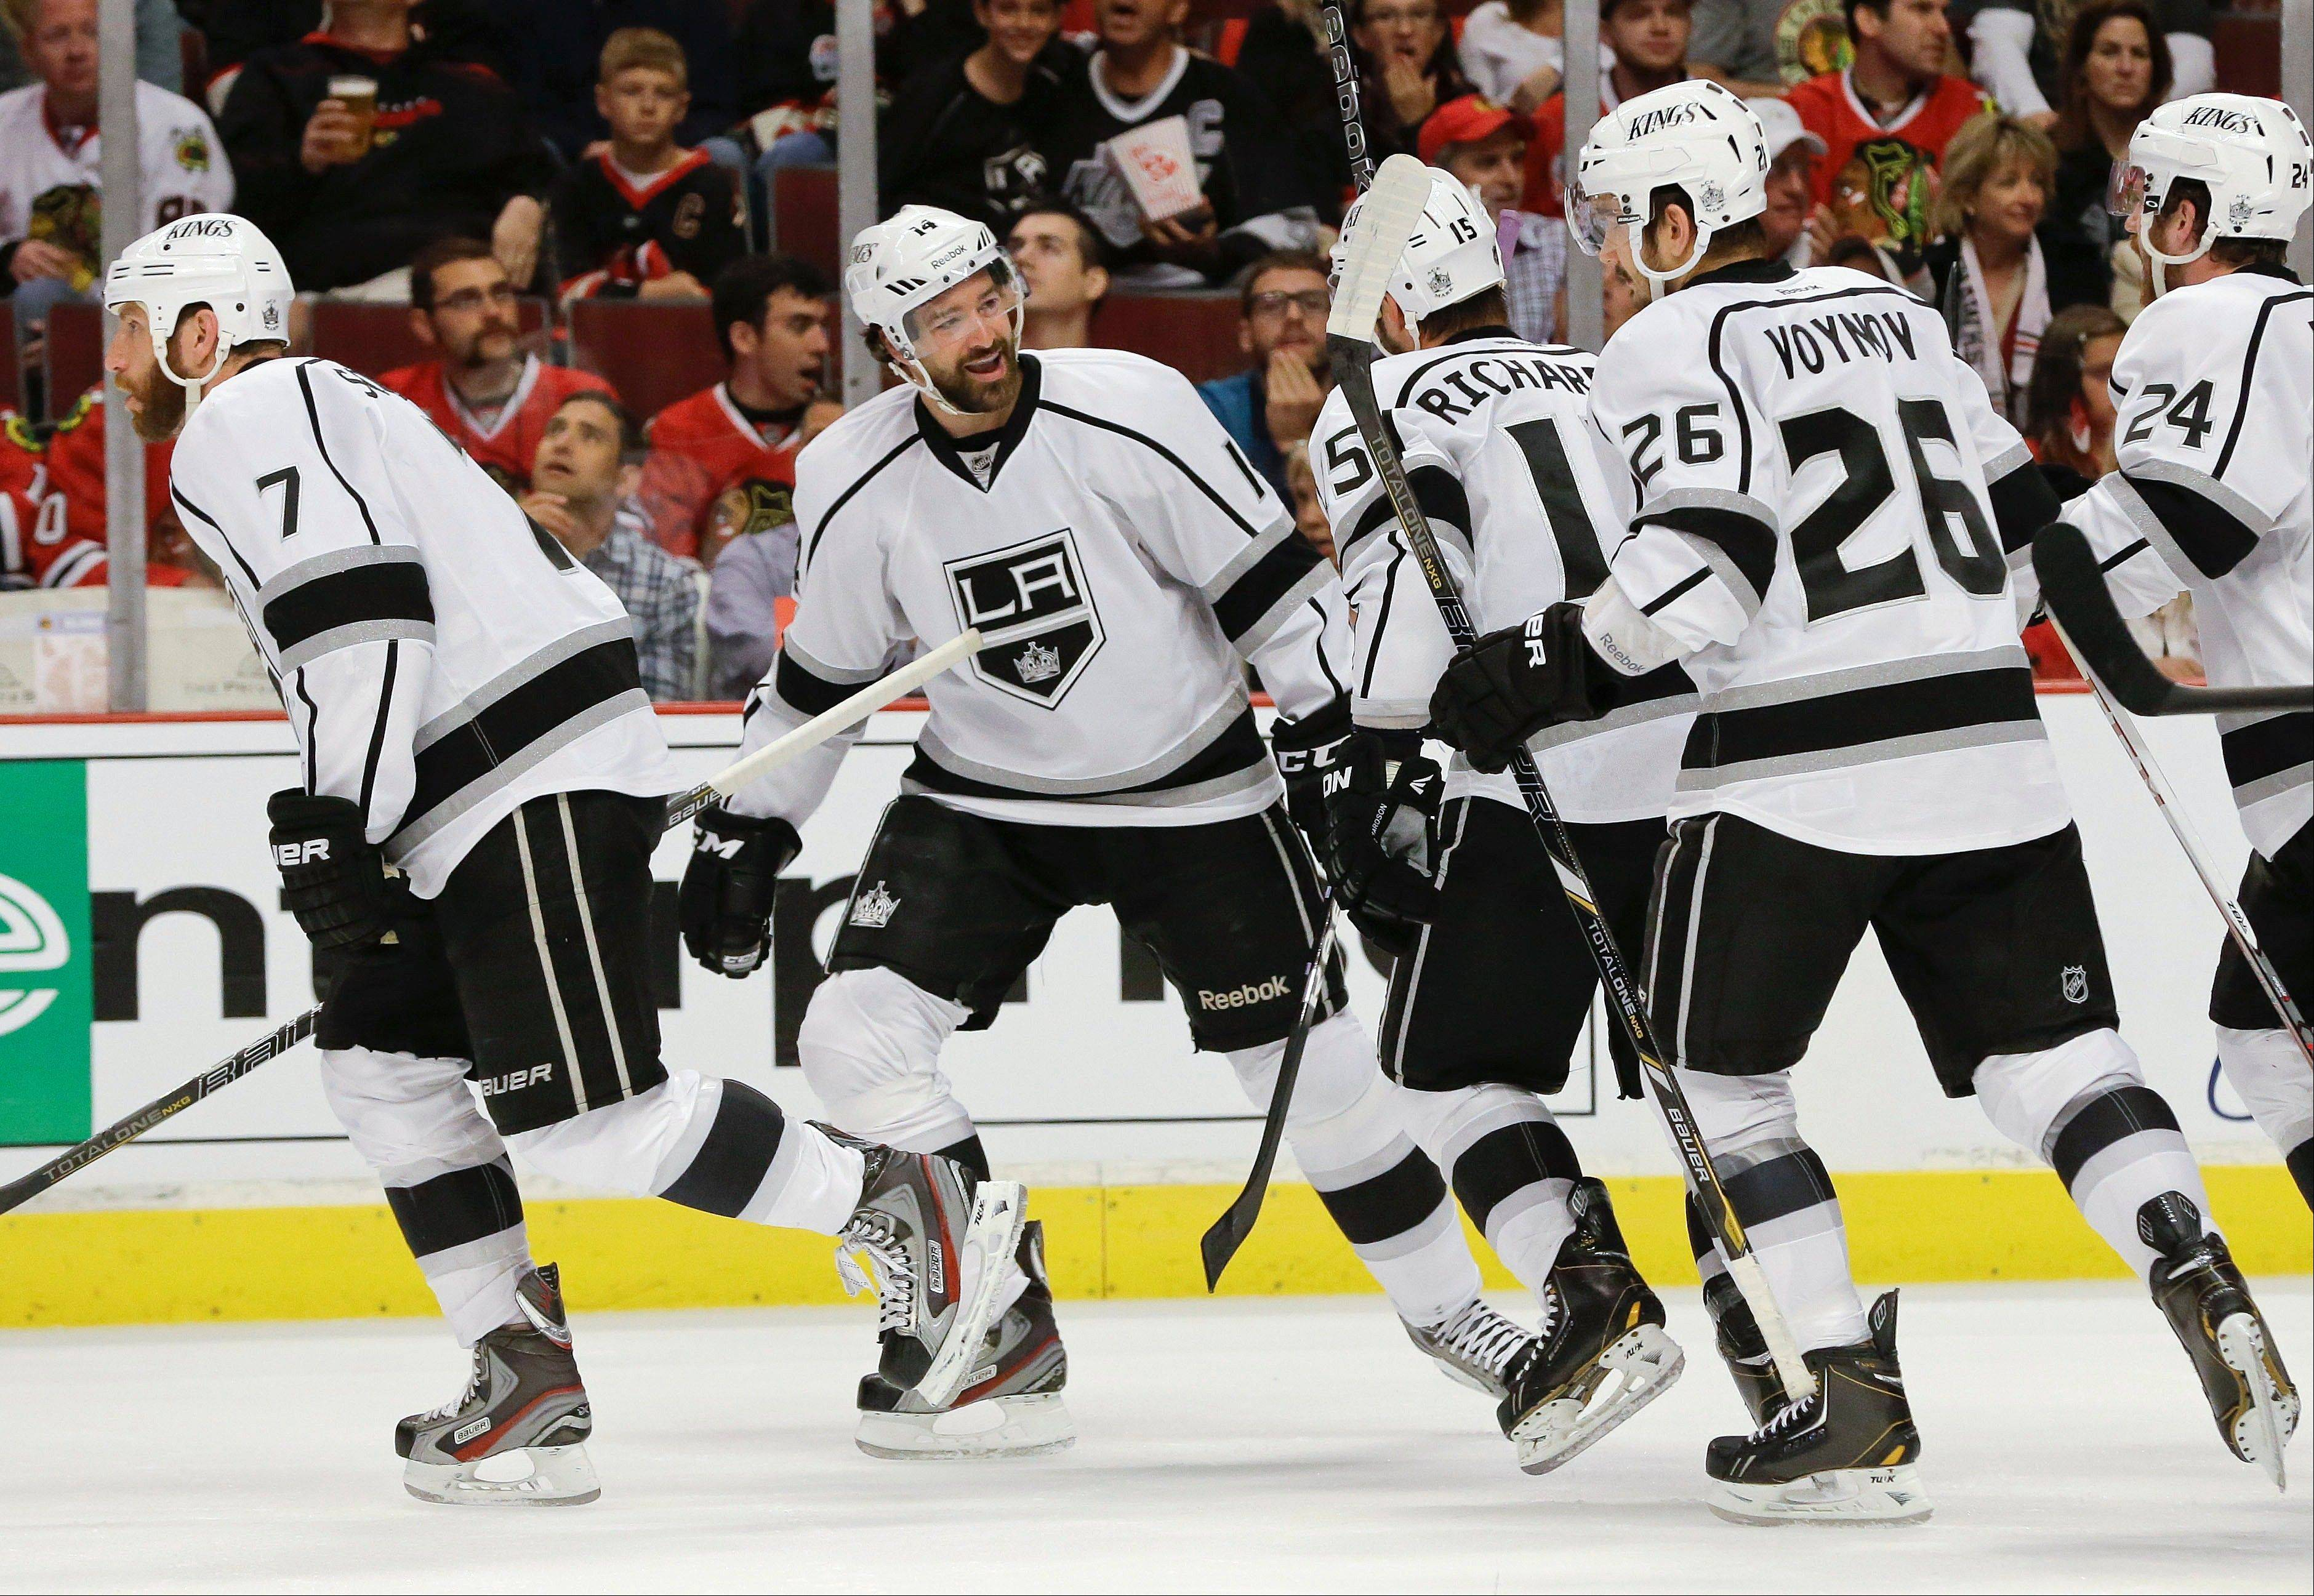 Los Angeles Kings right wing Justin Williams, second from left, smiles with teammates after scoring a goal against the Chicago Blackhawks in the first period of Game 1 of the NHL hockey Stanley Cup Western Conference finals, Saturday, June 1, 2013, in Chicago.